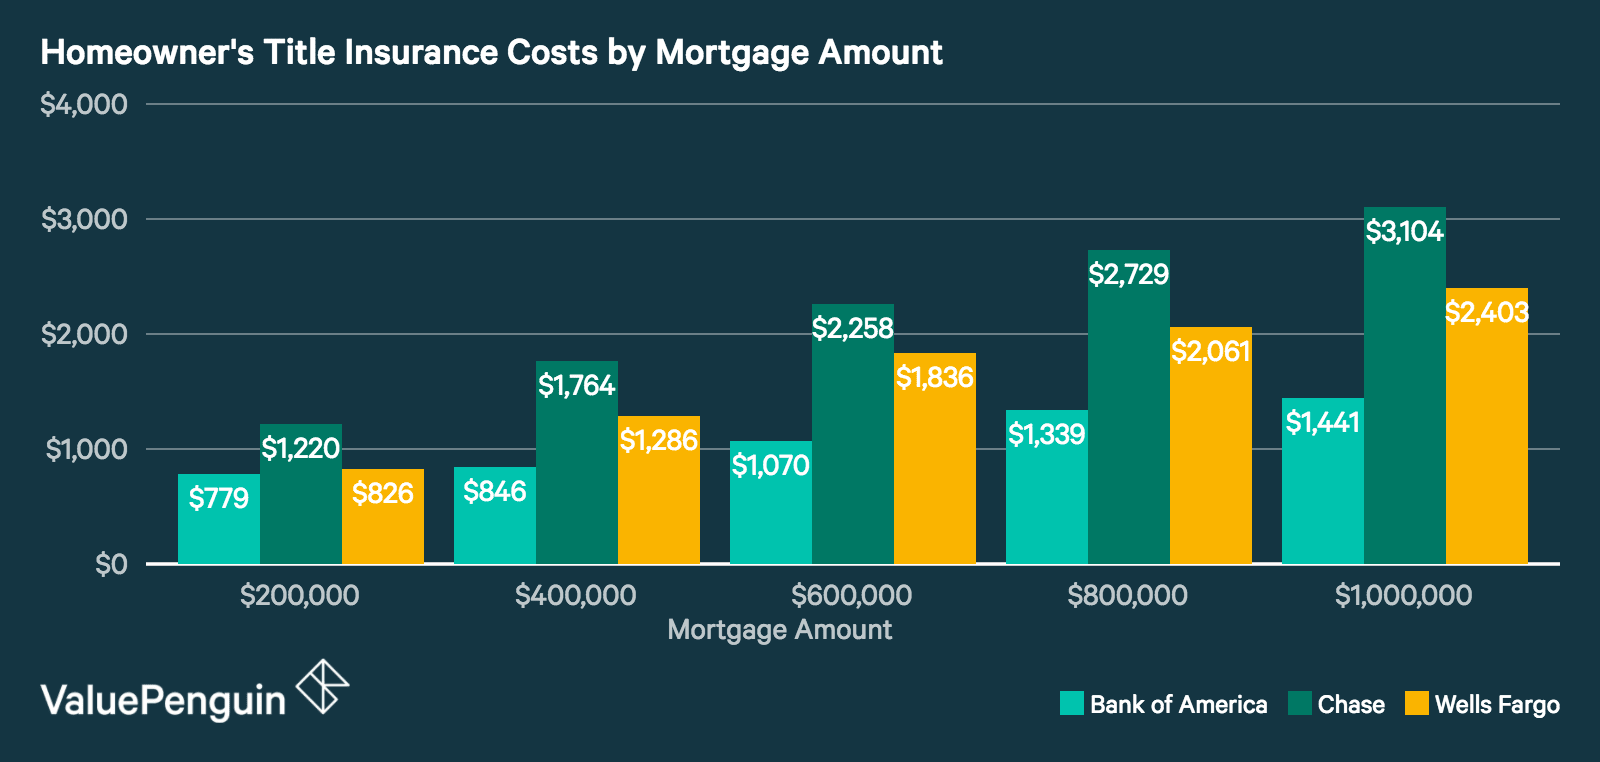 a chart comparing homeowner's title insurance costs for mortgages at Bank of America, Chase and Wells Fargo